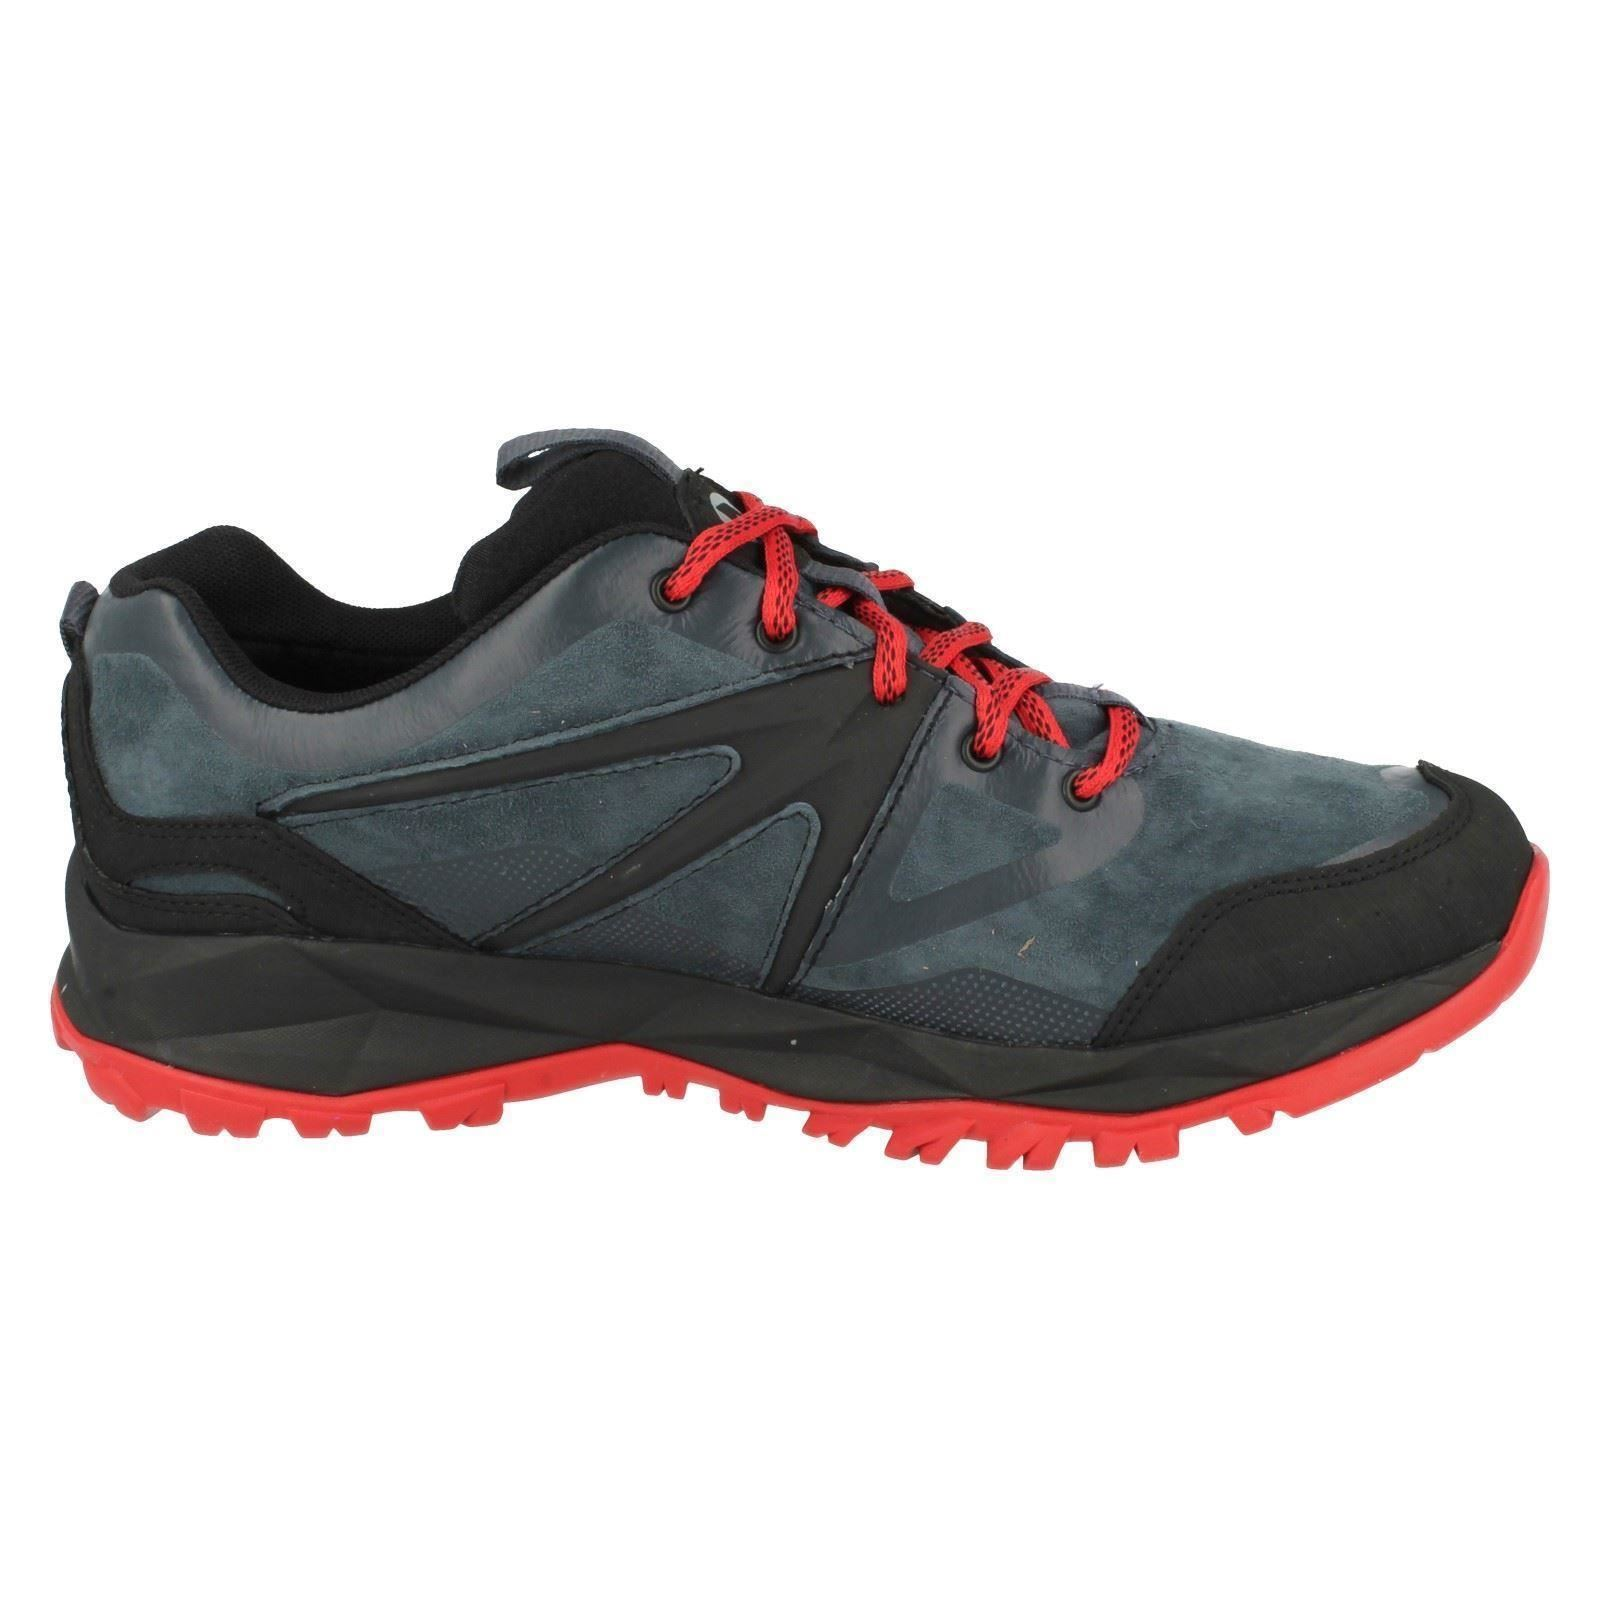 Mens Merrrell Trainers Style - Capra Bolt Leather WTPF